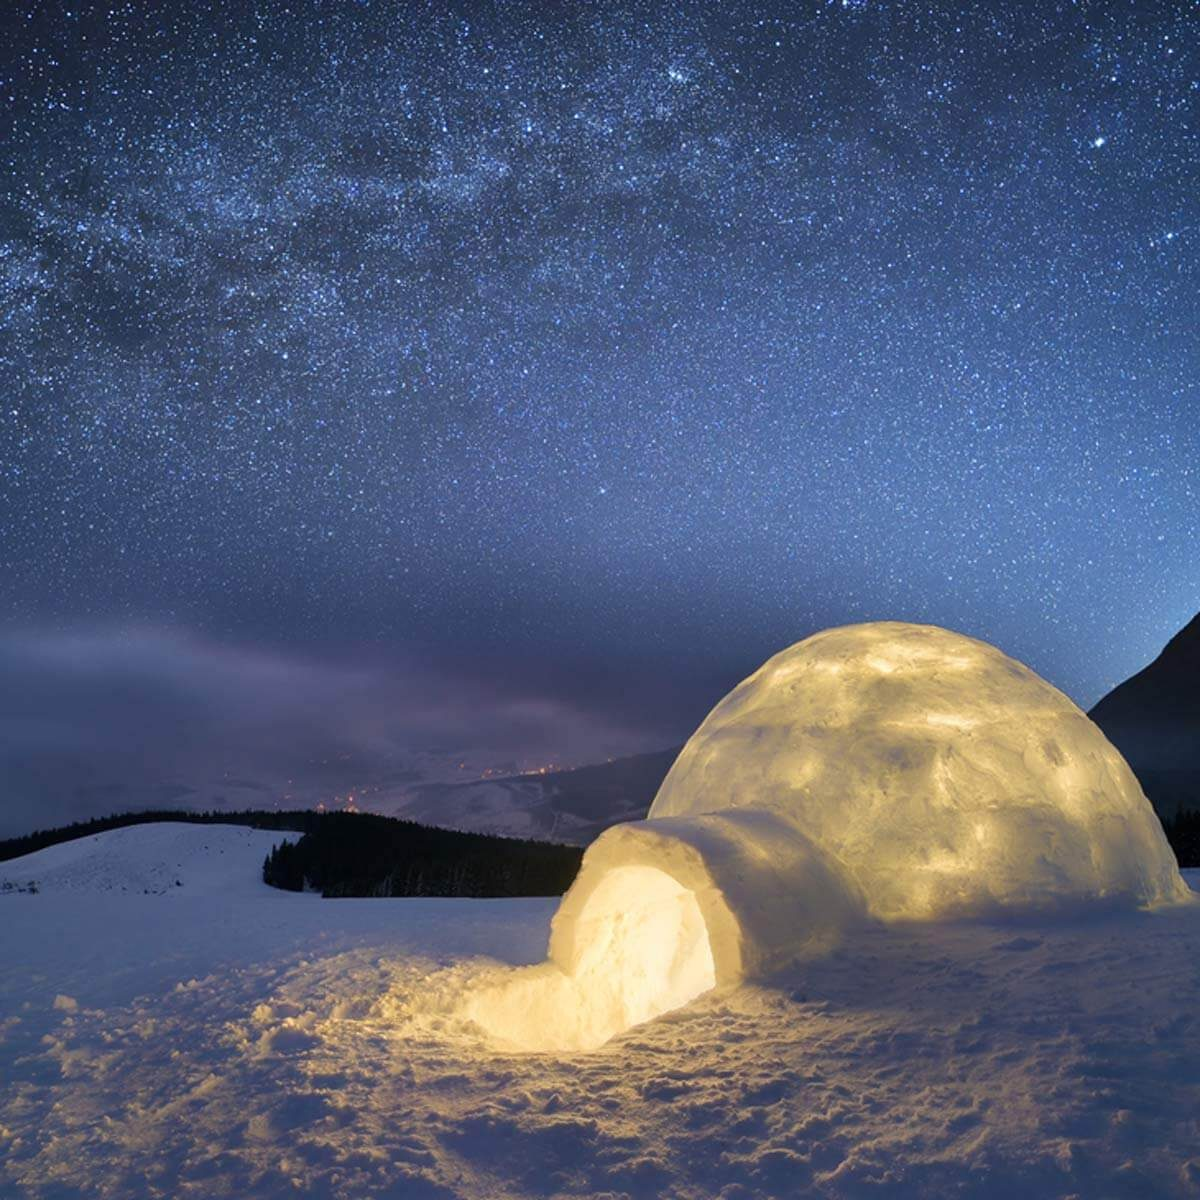 shutterstock_496337095 stary night snow fort igloo